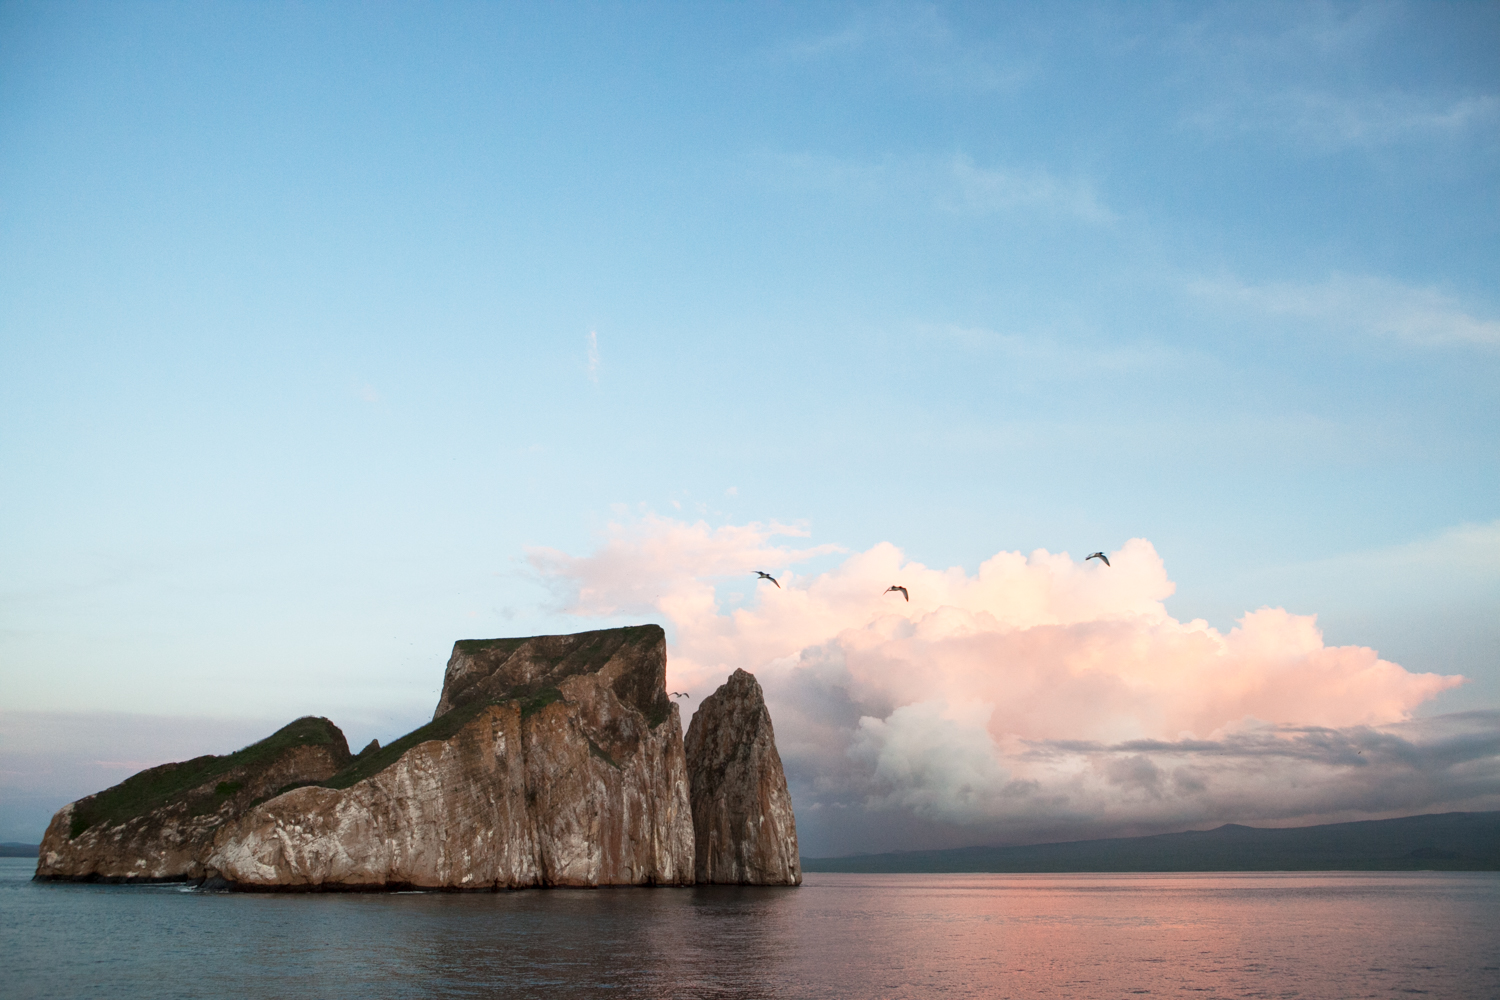 Birds fly around a rock formation in the Galapagos Islands.